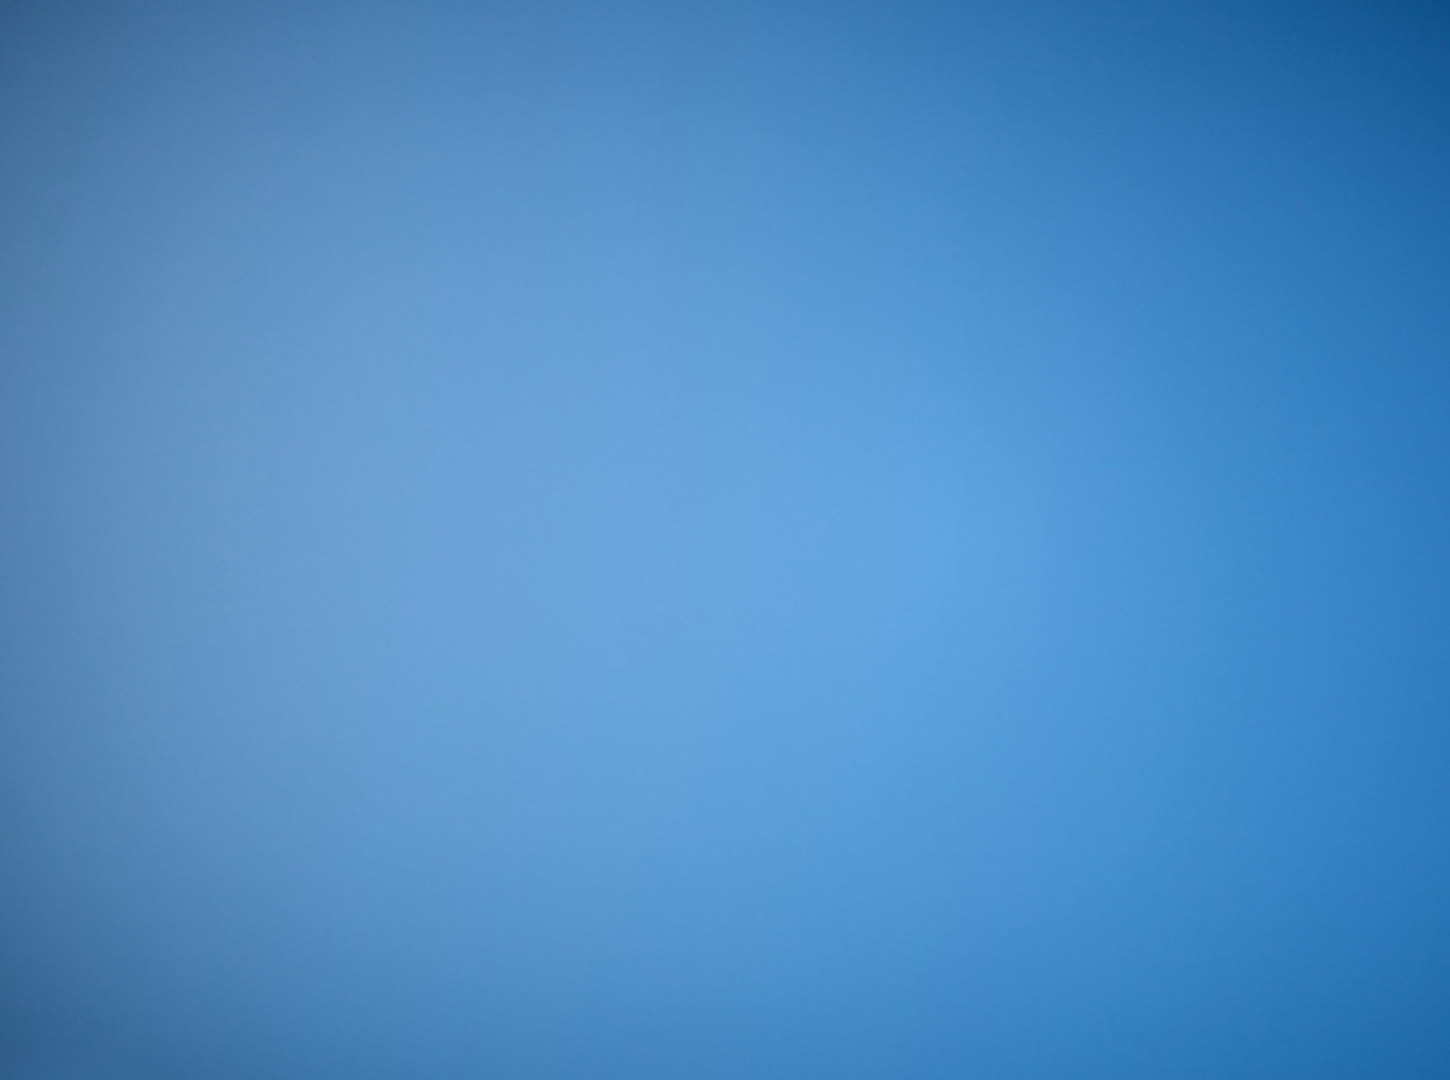 Download Free Blue Gradient Background